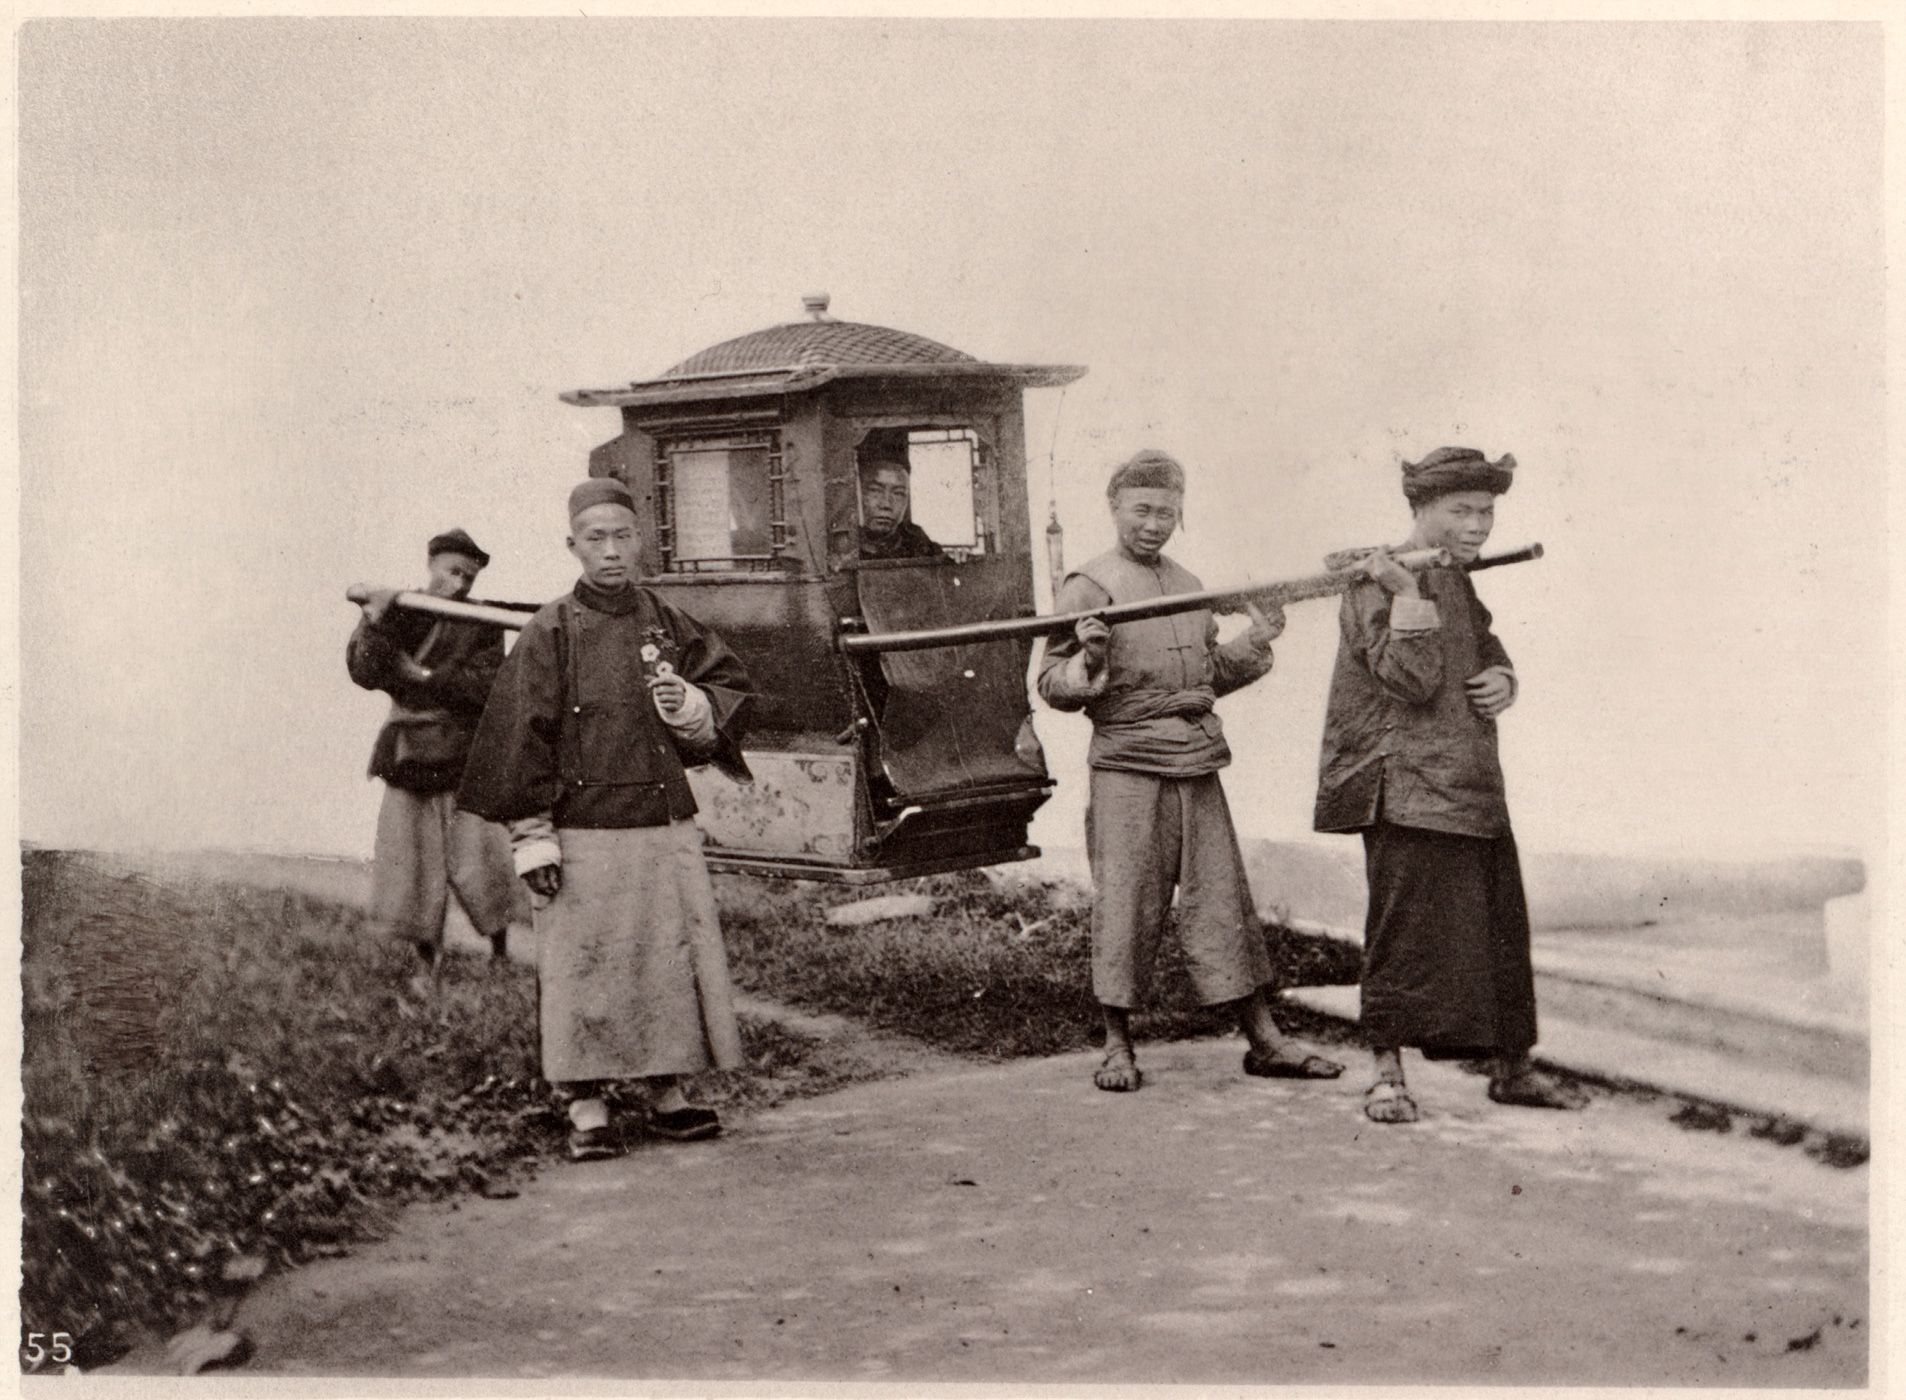 Chinese Wedding Sedan Chair Covers South Wales China Ca 1870 From John Thomson Images Of